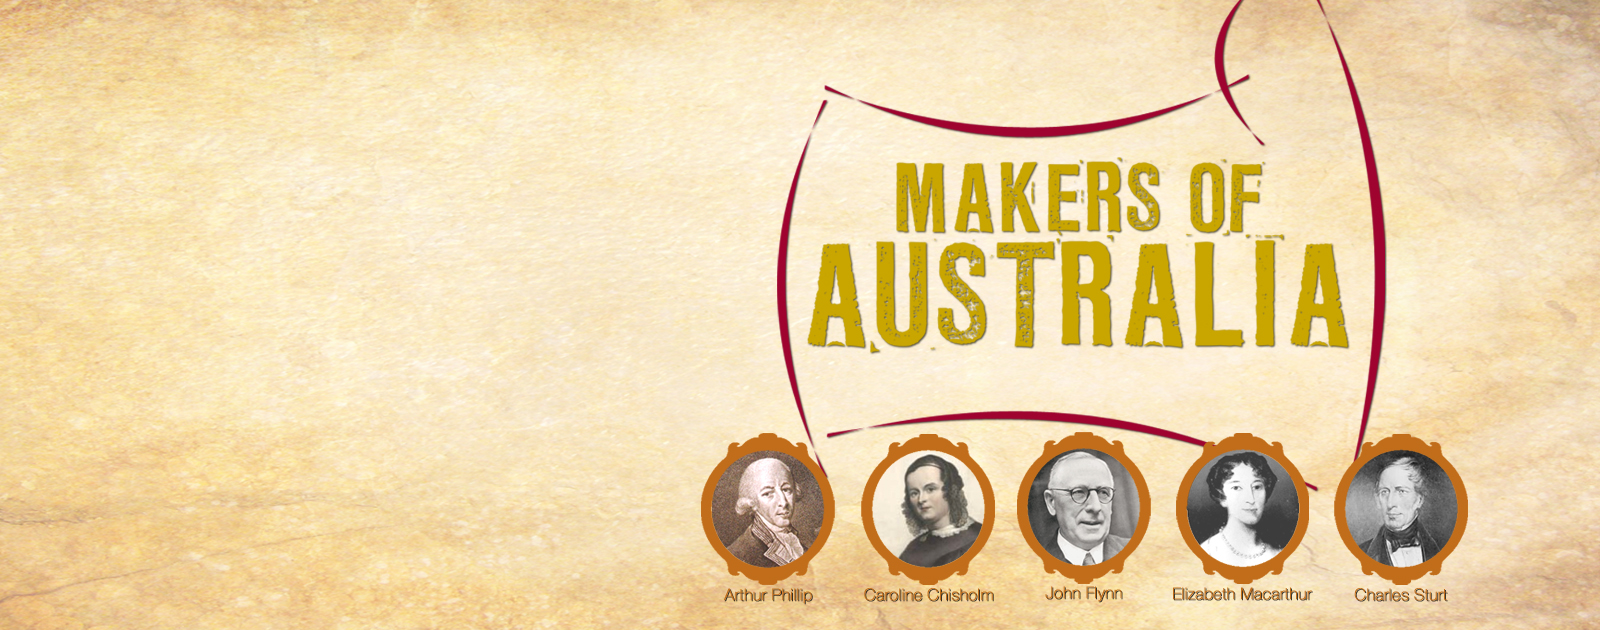 Makers-of-Australia_01